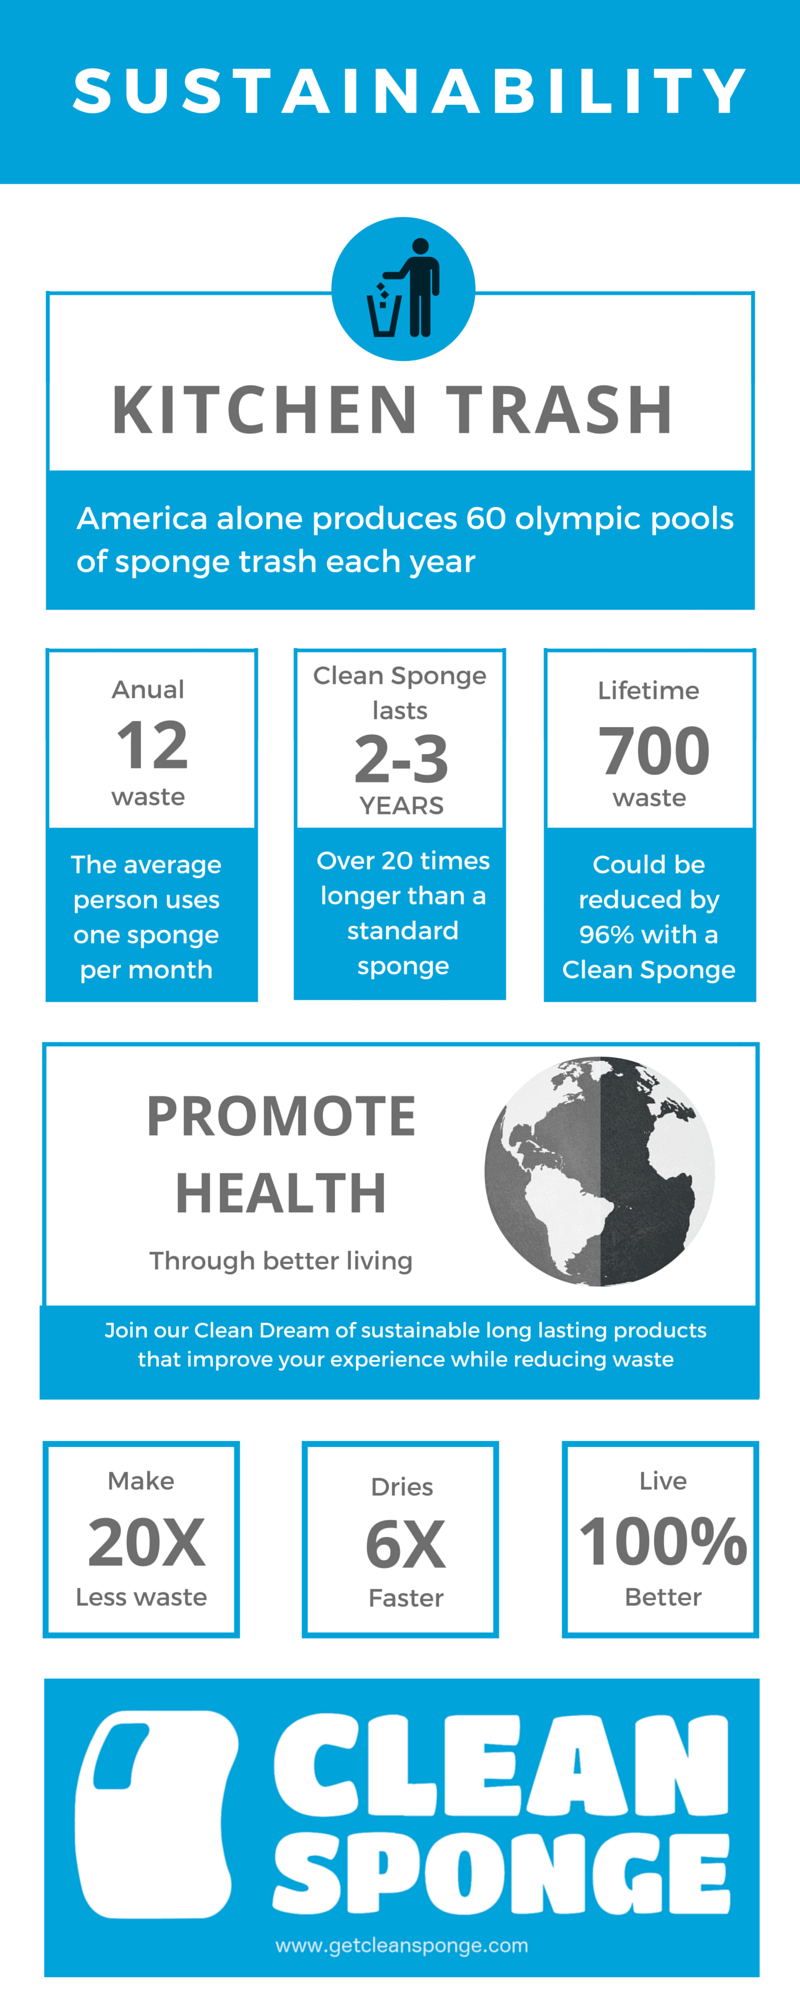 An info graphic showing american sponge trash produced in one year and how the Clean Sponge can reduce it by 96%